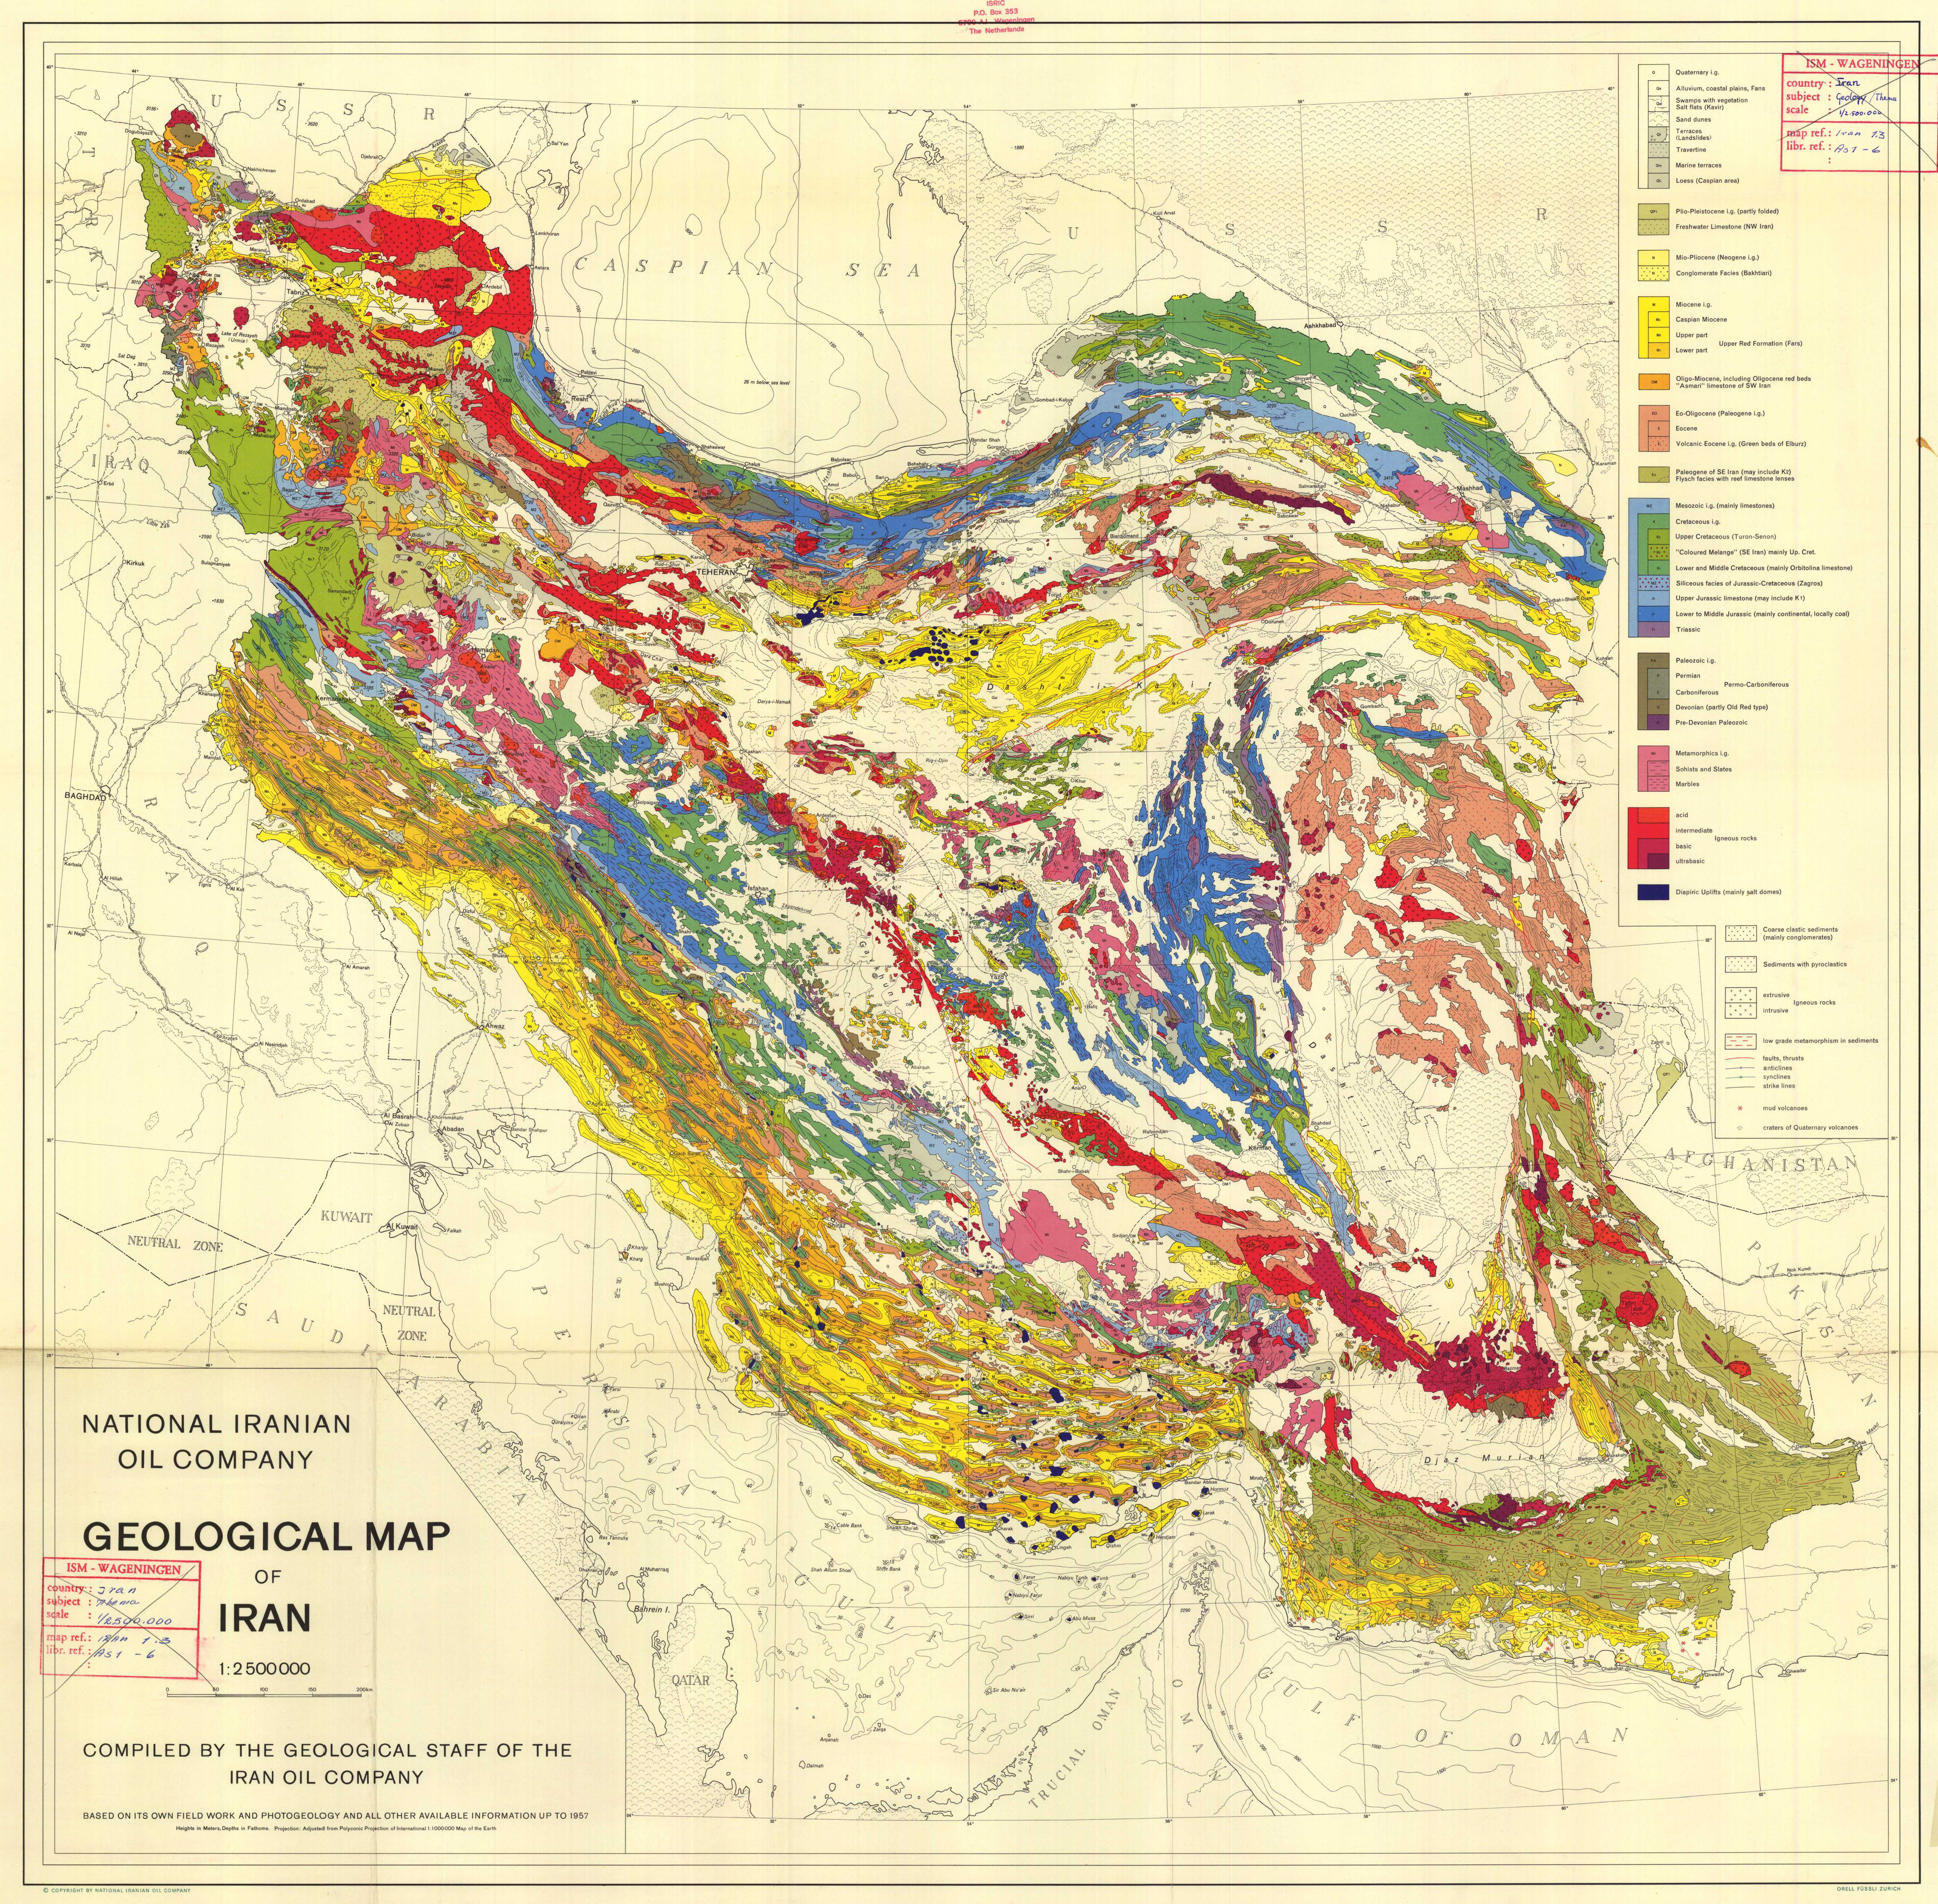 geological map of iran